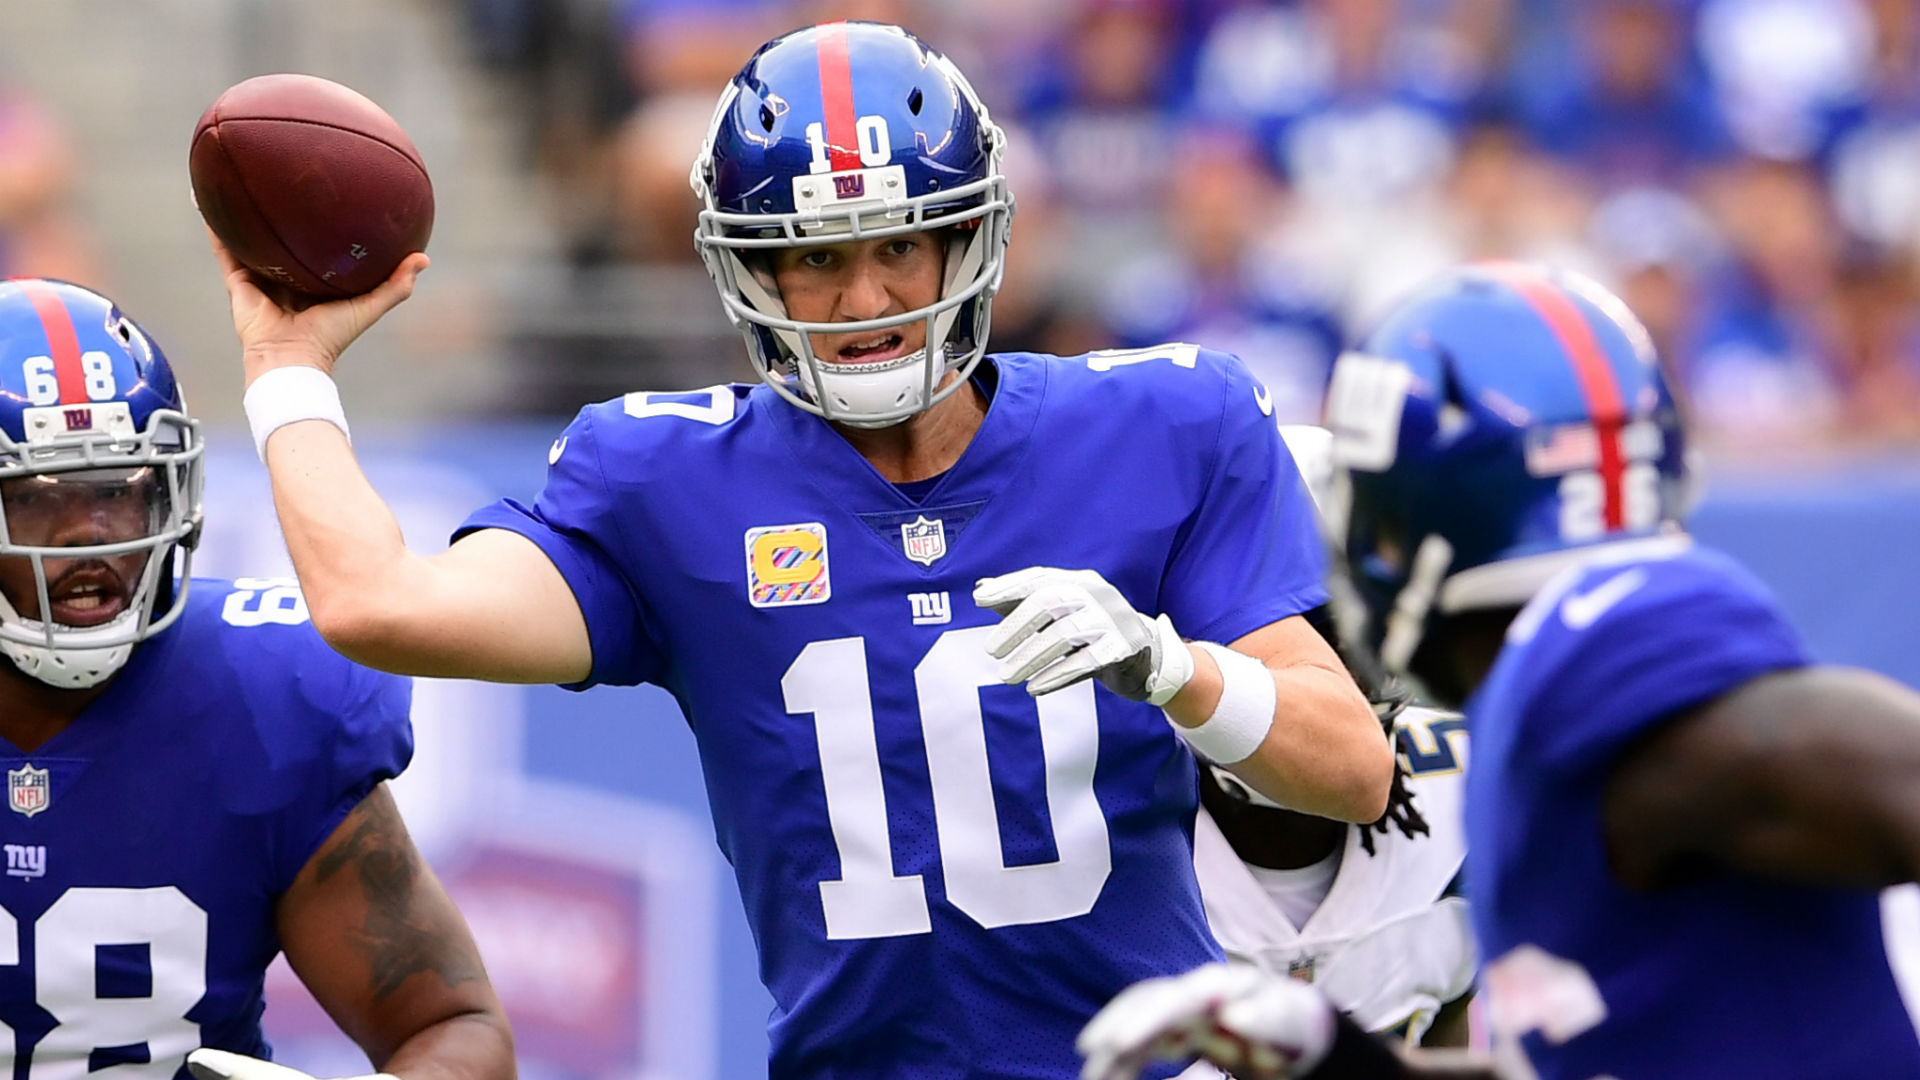 Giants matchup offers 49ers quality crack at consecutive wins